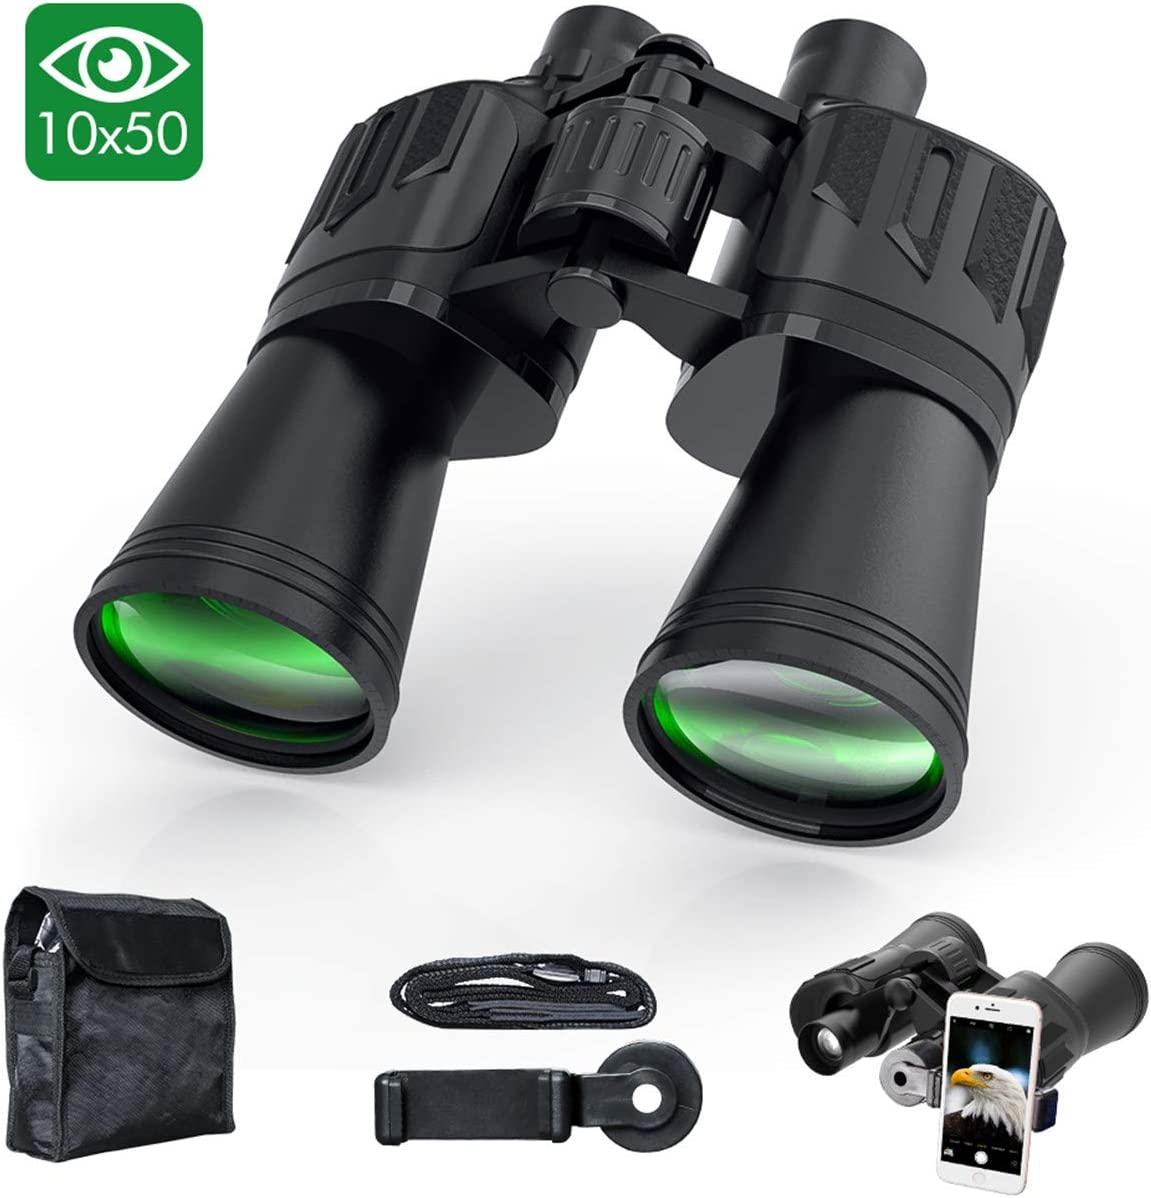 Binoculars for Adults, Sinohrd 10×50 Compact Powerful HD Binoculars for Bird Watching,Traveling,Hunting,Concerts,Sightseeing Telescope with Strap Carrying Bag Phone Mount